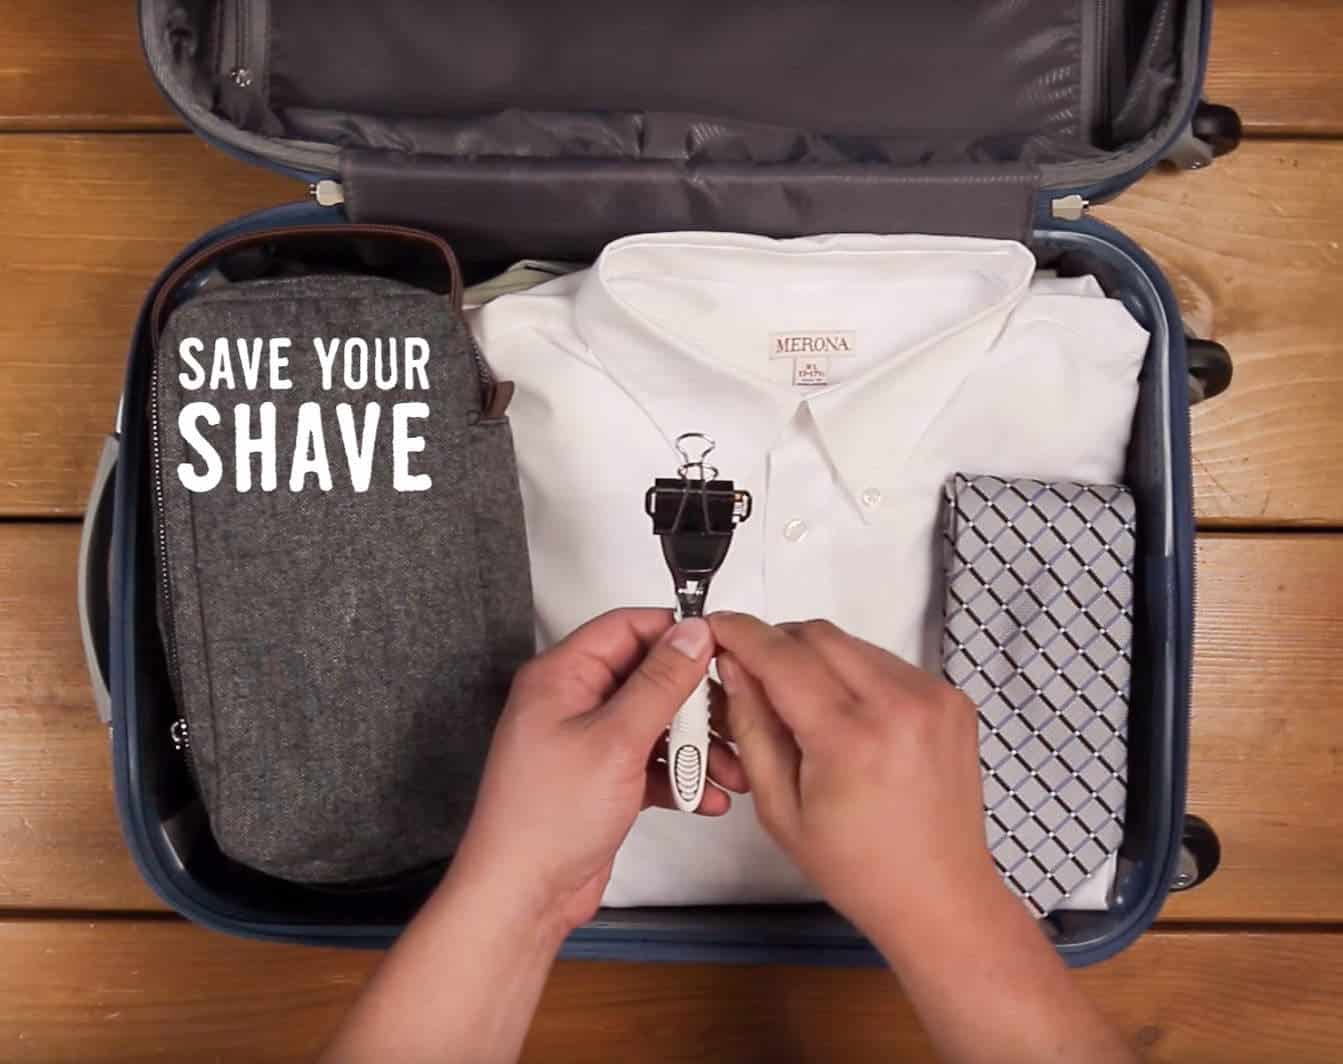 Protect your razor - These indispensable travel packing tips we've assembled will make your packing and unpacking much more efficient and help you stay super organized while on vacation. Now you're set to travel like a pro!